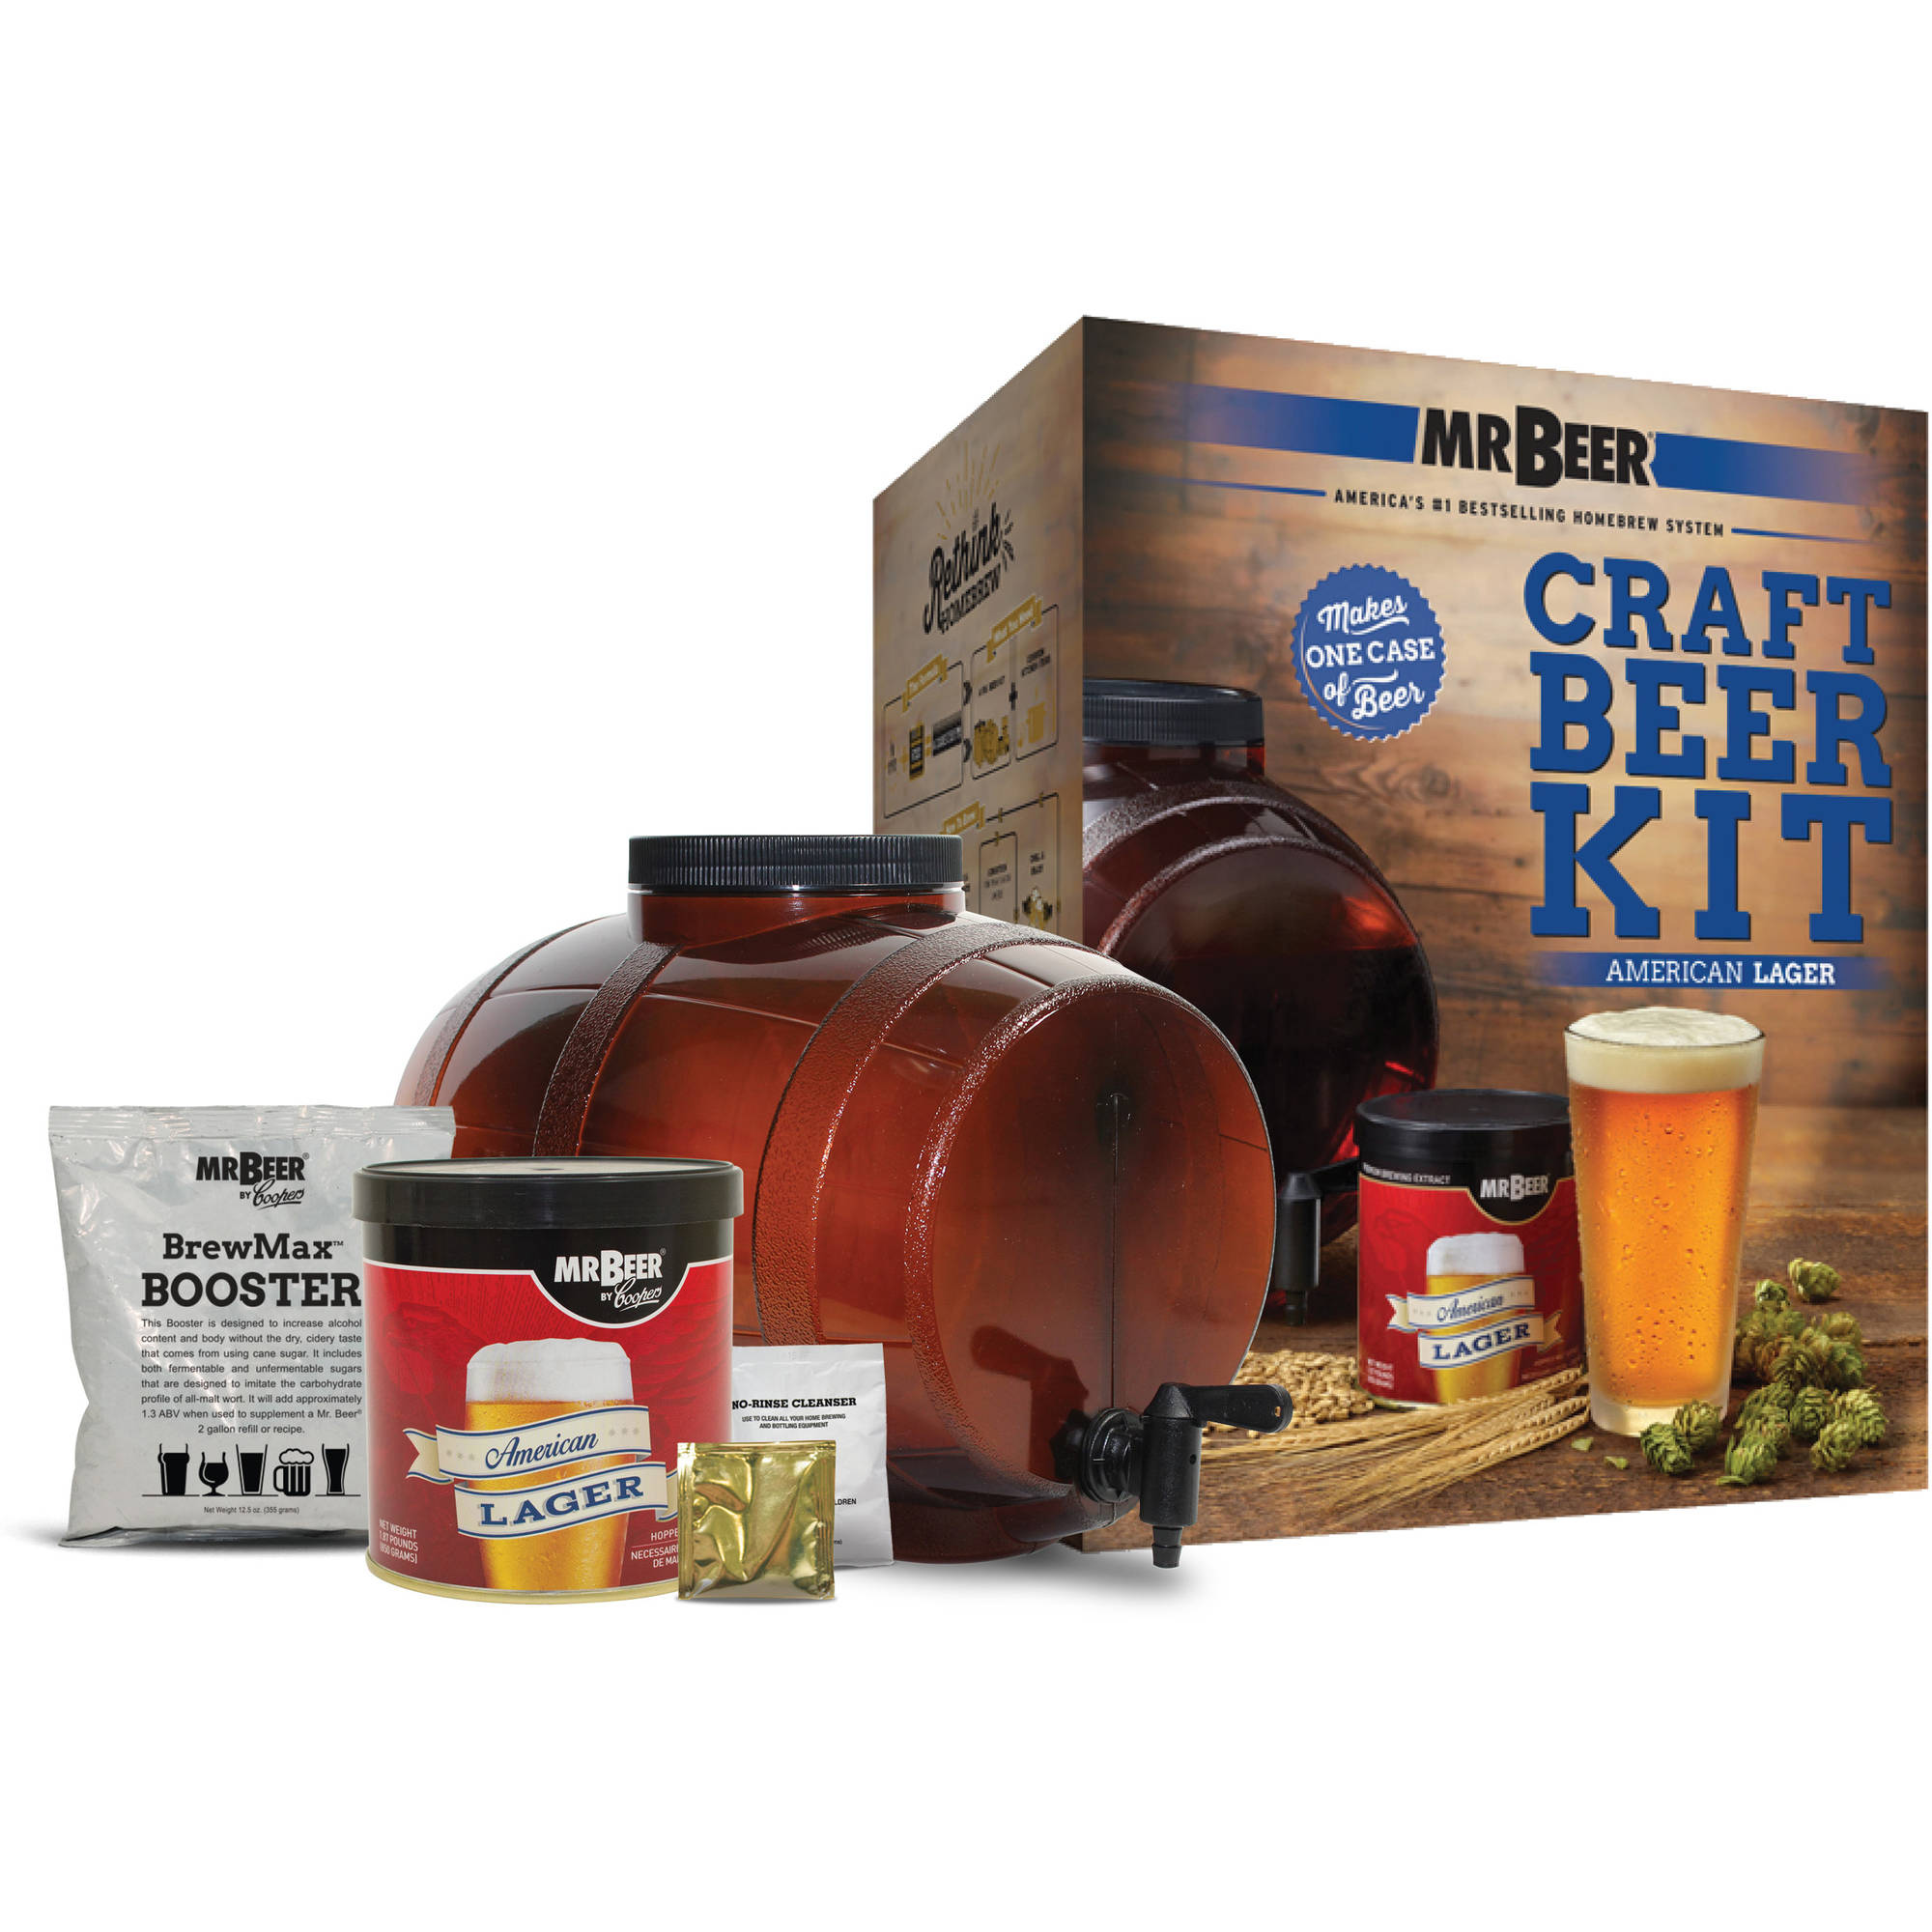 Mr. Beer American Lager Craft Beer Making Kit with American Lager Refill and Convenient Fermenter Designed for Simple and Efficient Homebrewing